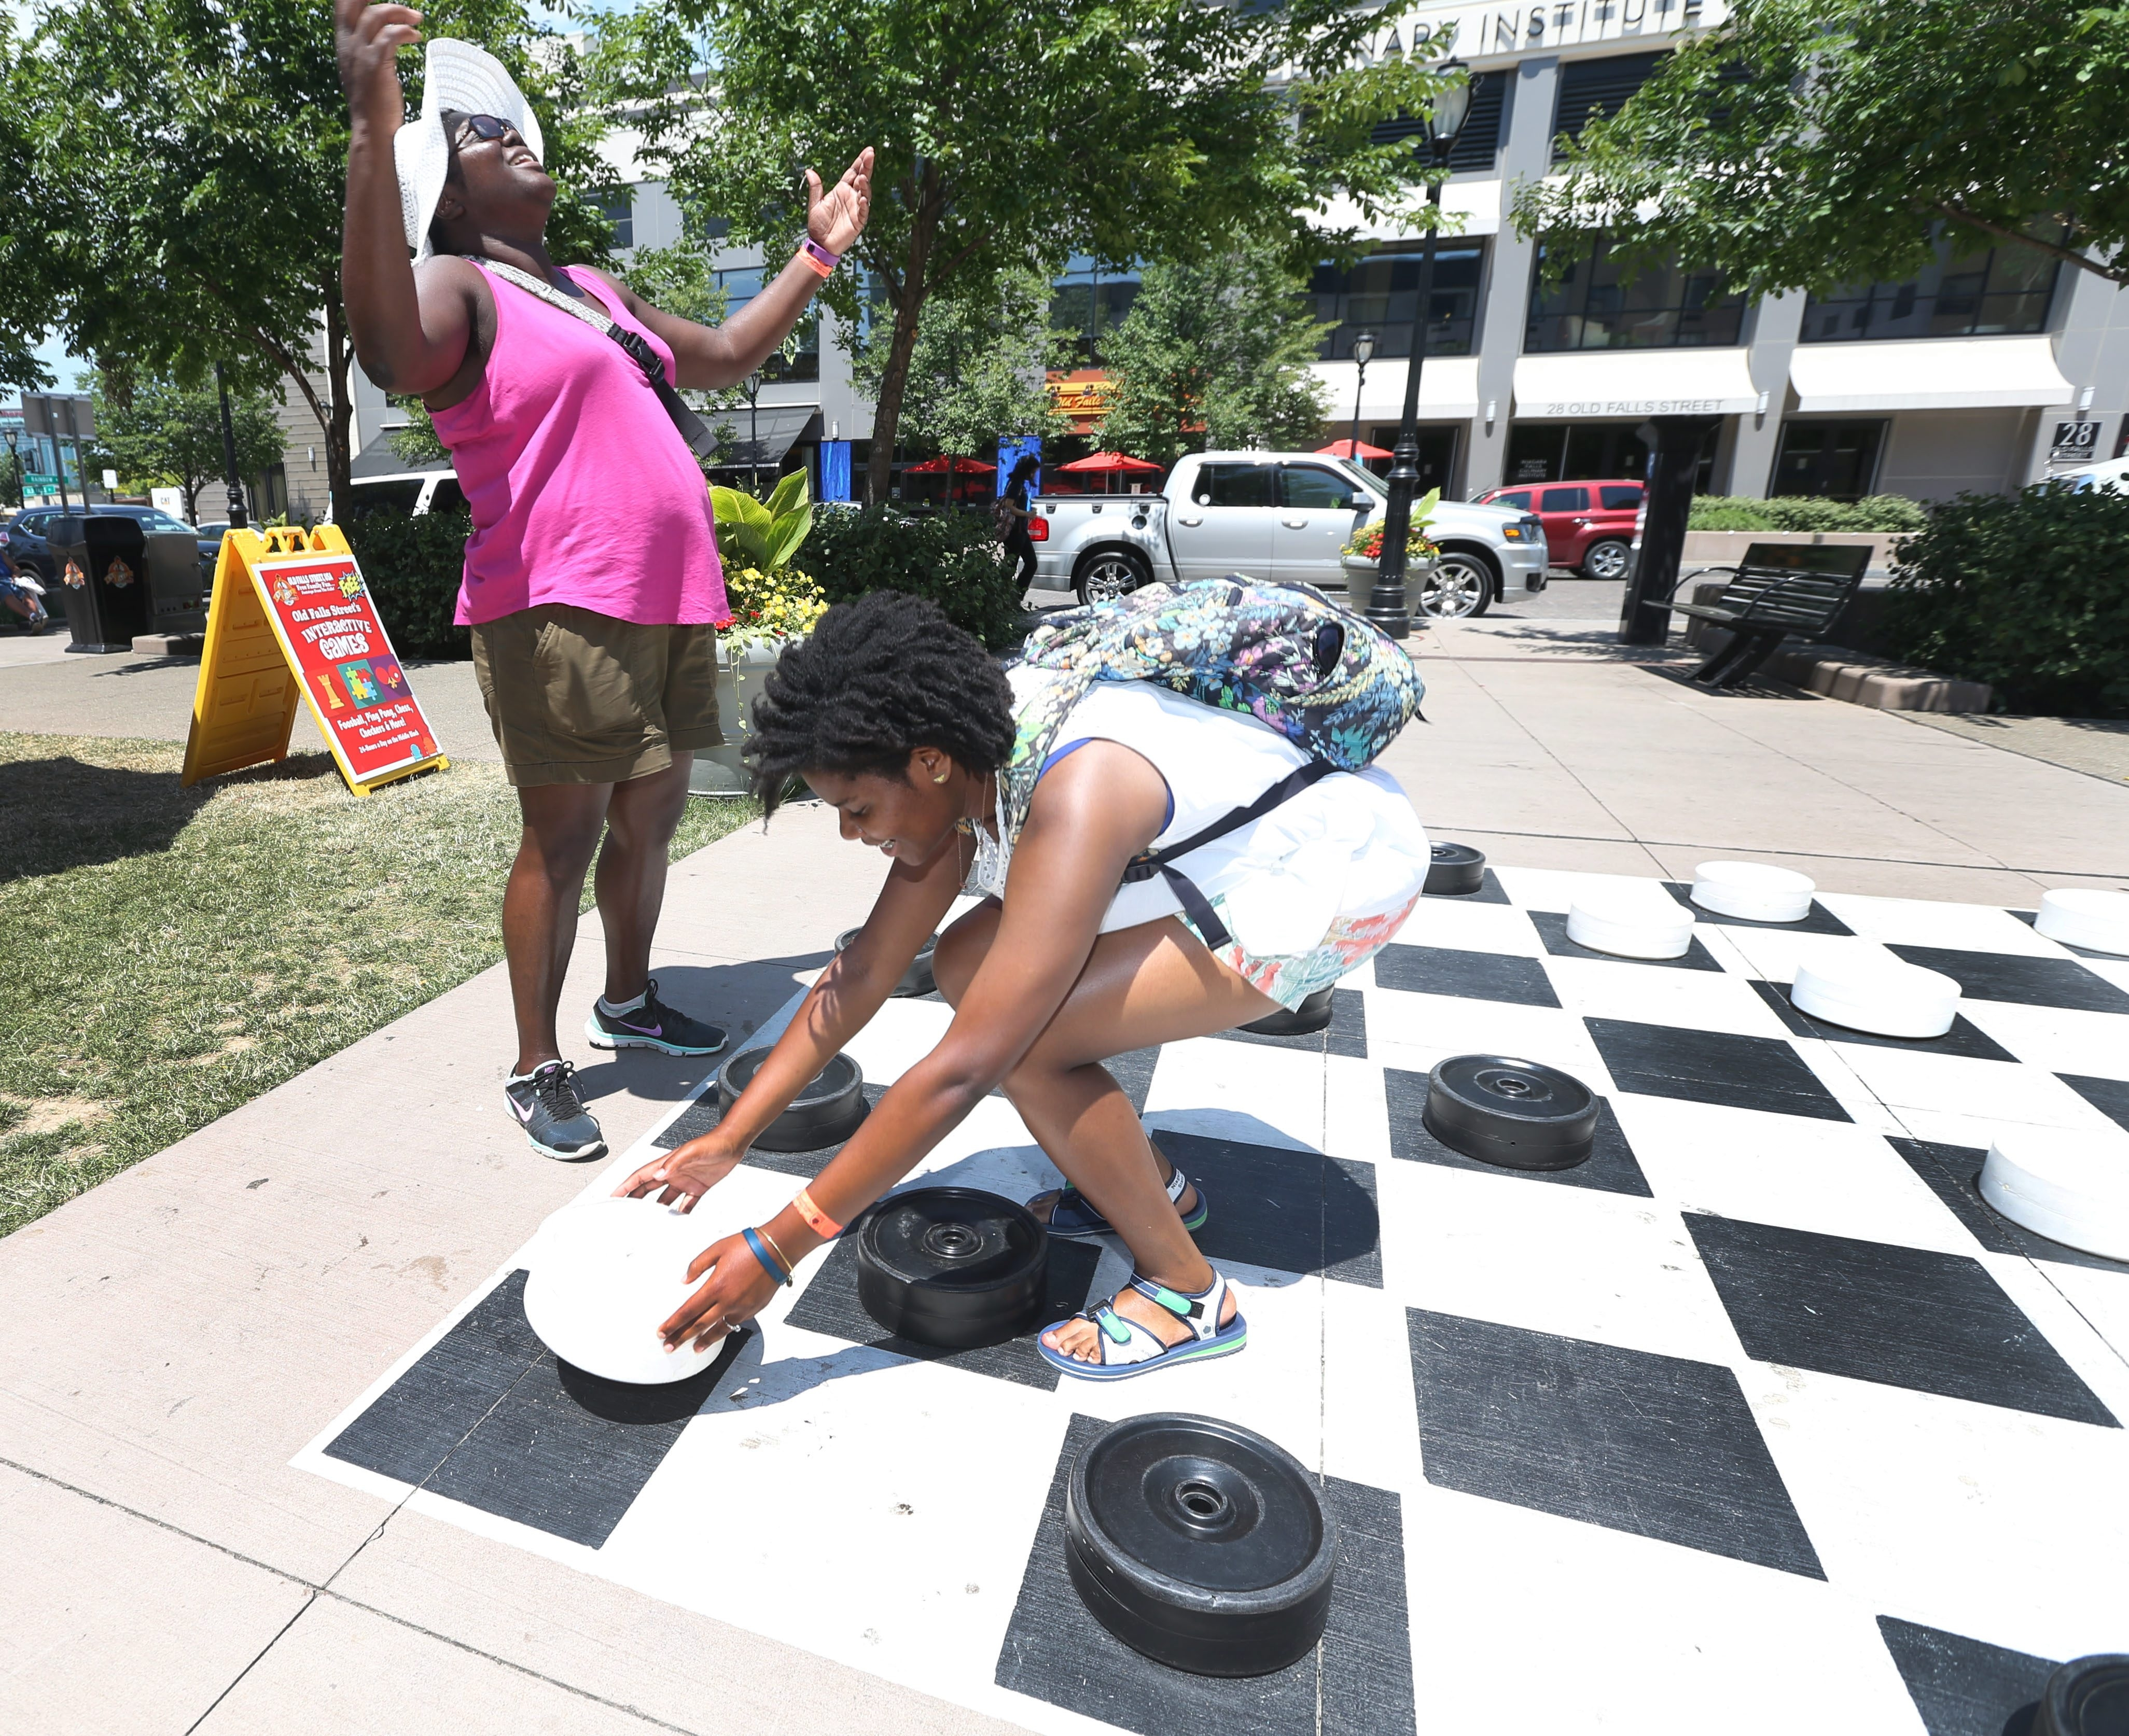 Old Falls Street in Niagara Falls has various activities for the family. The area has various games and Adirondack chairs to relax. Chelsea Presley, pink, of Batesville Mississippi, and her daughter Ciera, 16, play a giant game of checkers, Tuesday, July 5, 2016. The family is in Niagara Falls for vacation.  Ciera gets a double jump. (Sharon Cantillon/Buffalo News)